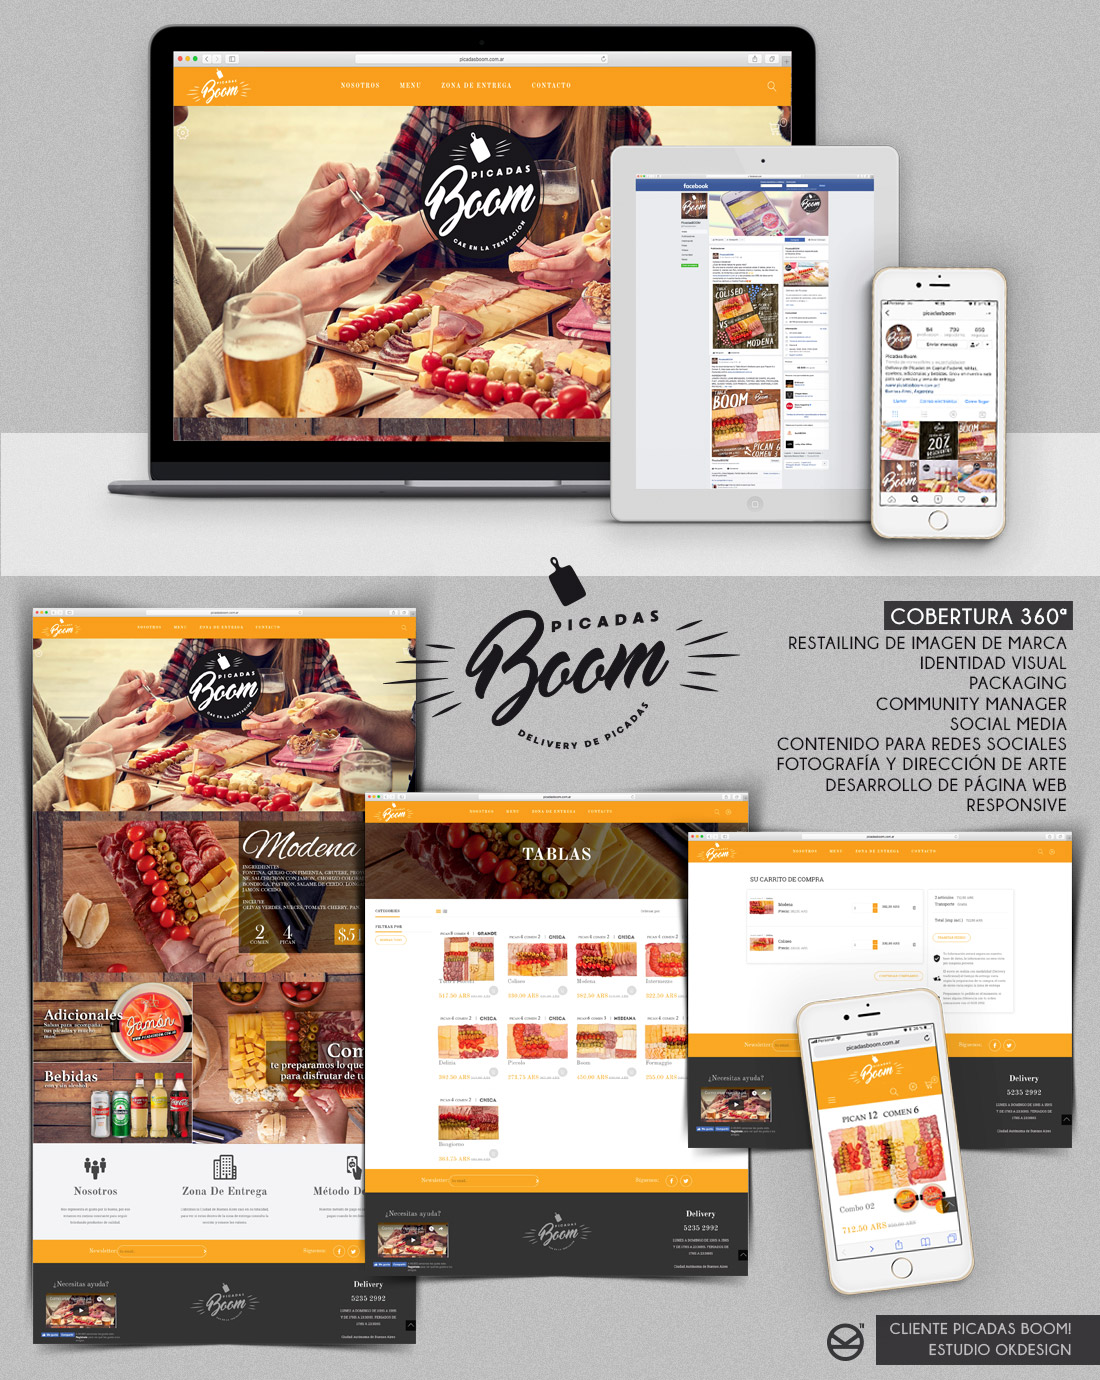 picadas boom works okdesign